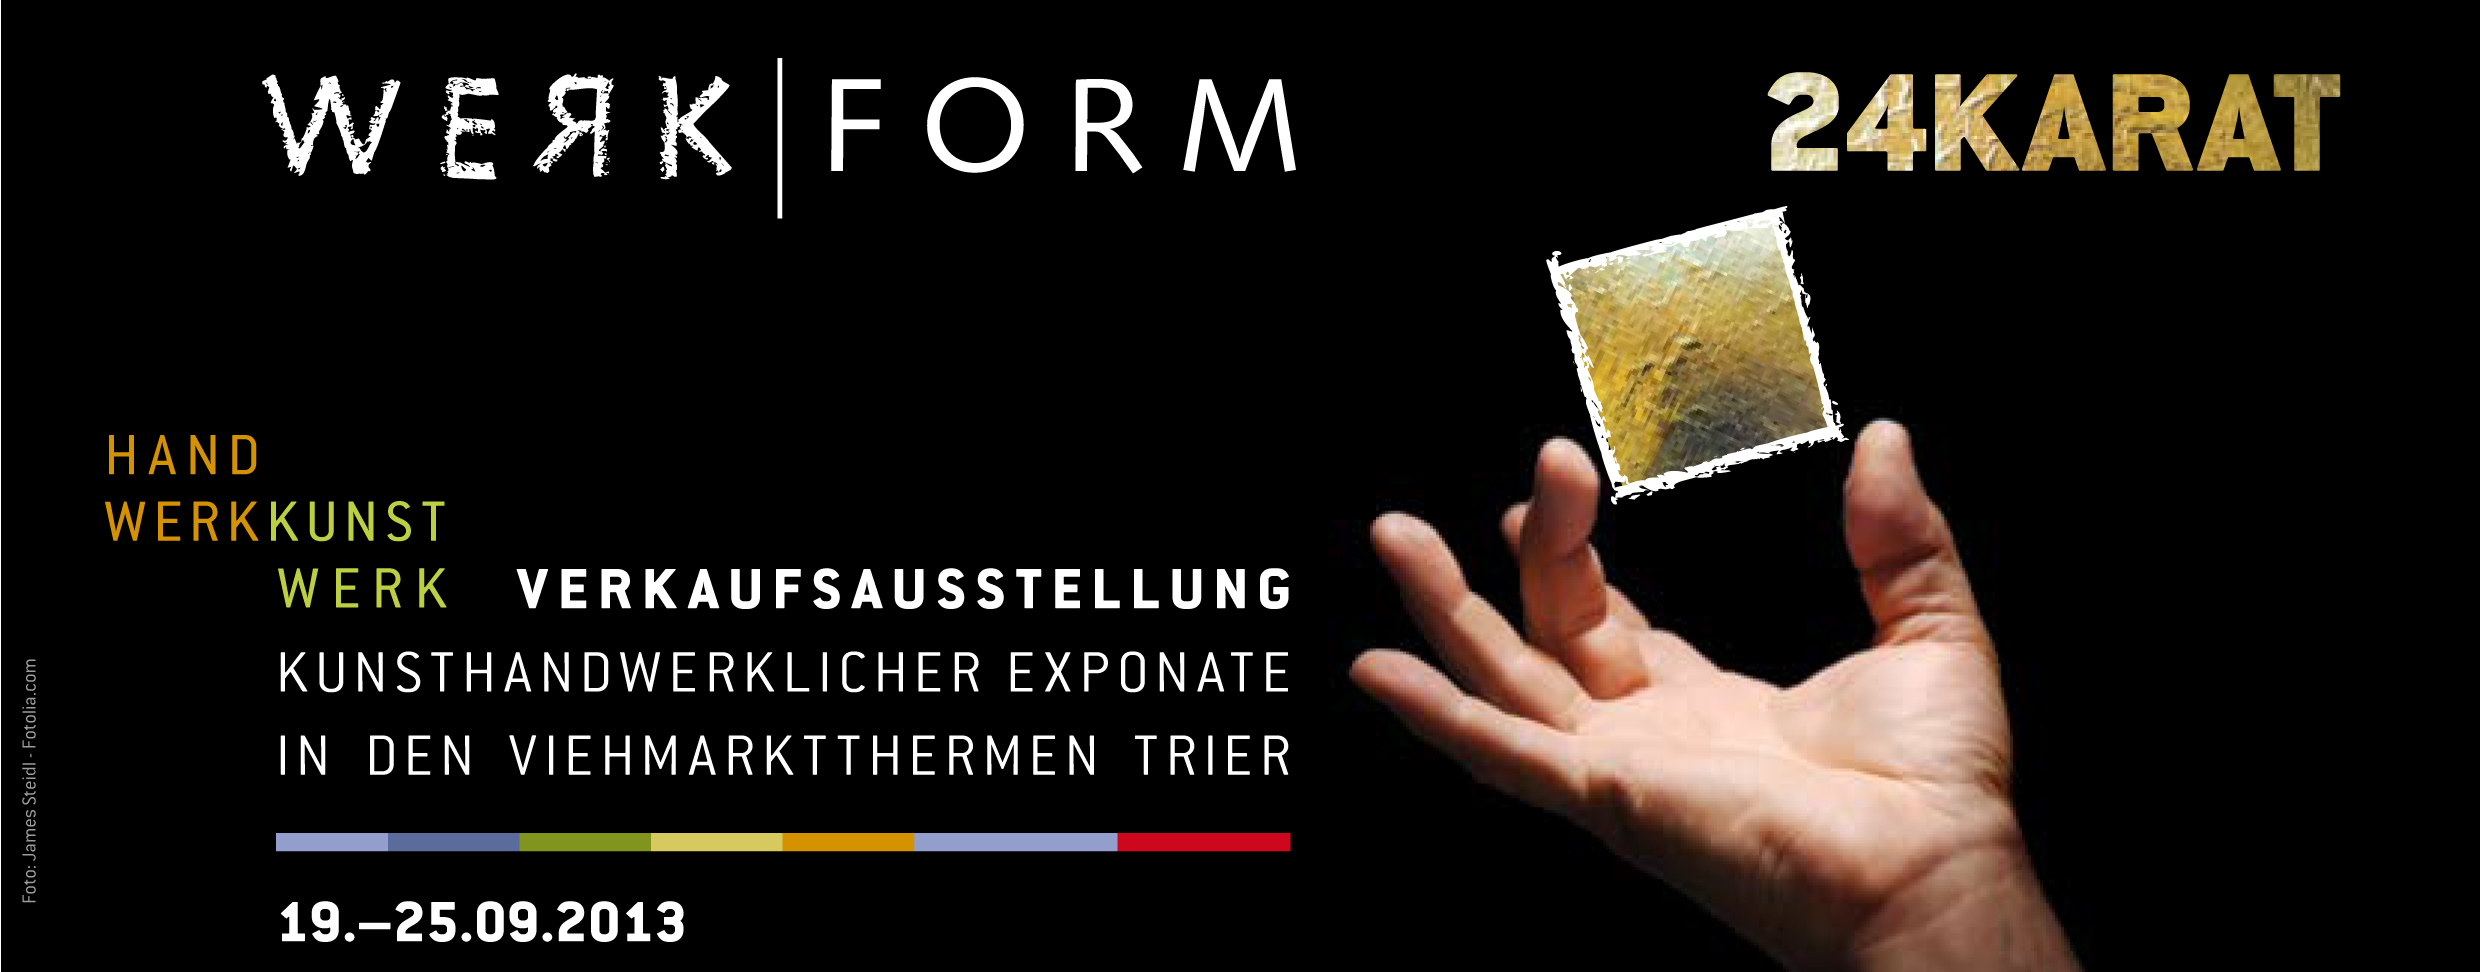 werkform